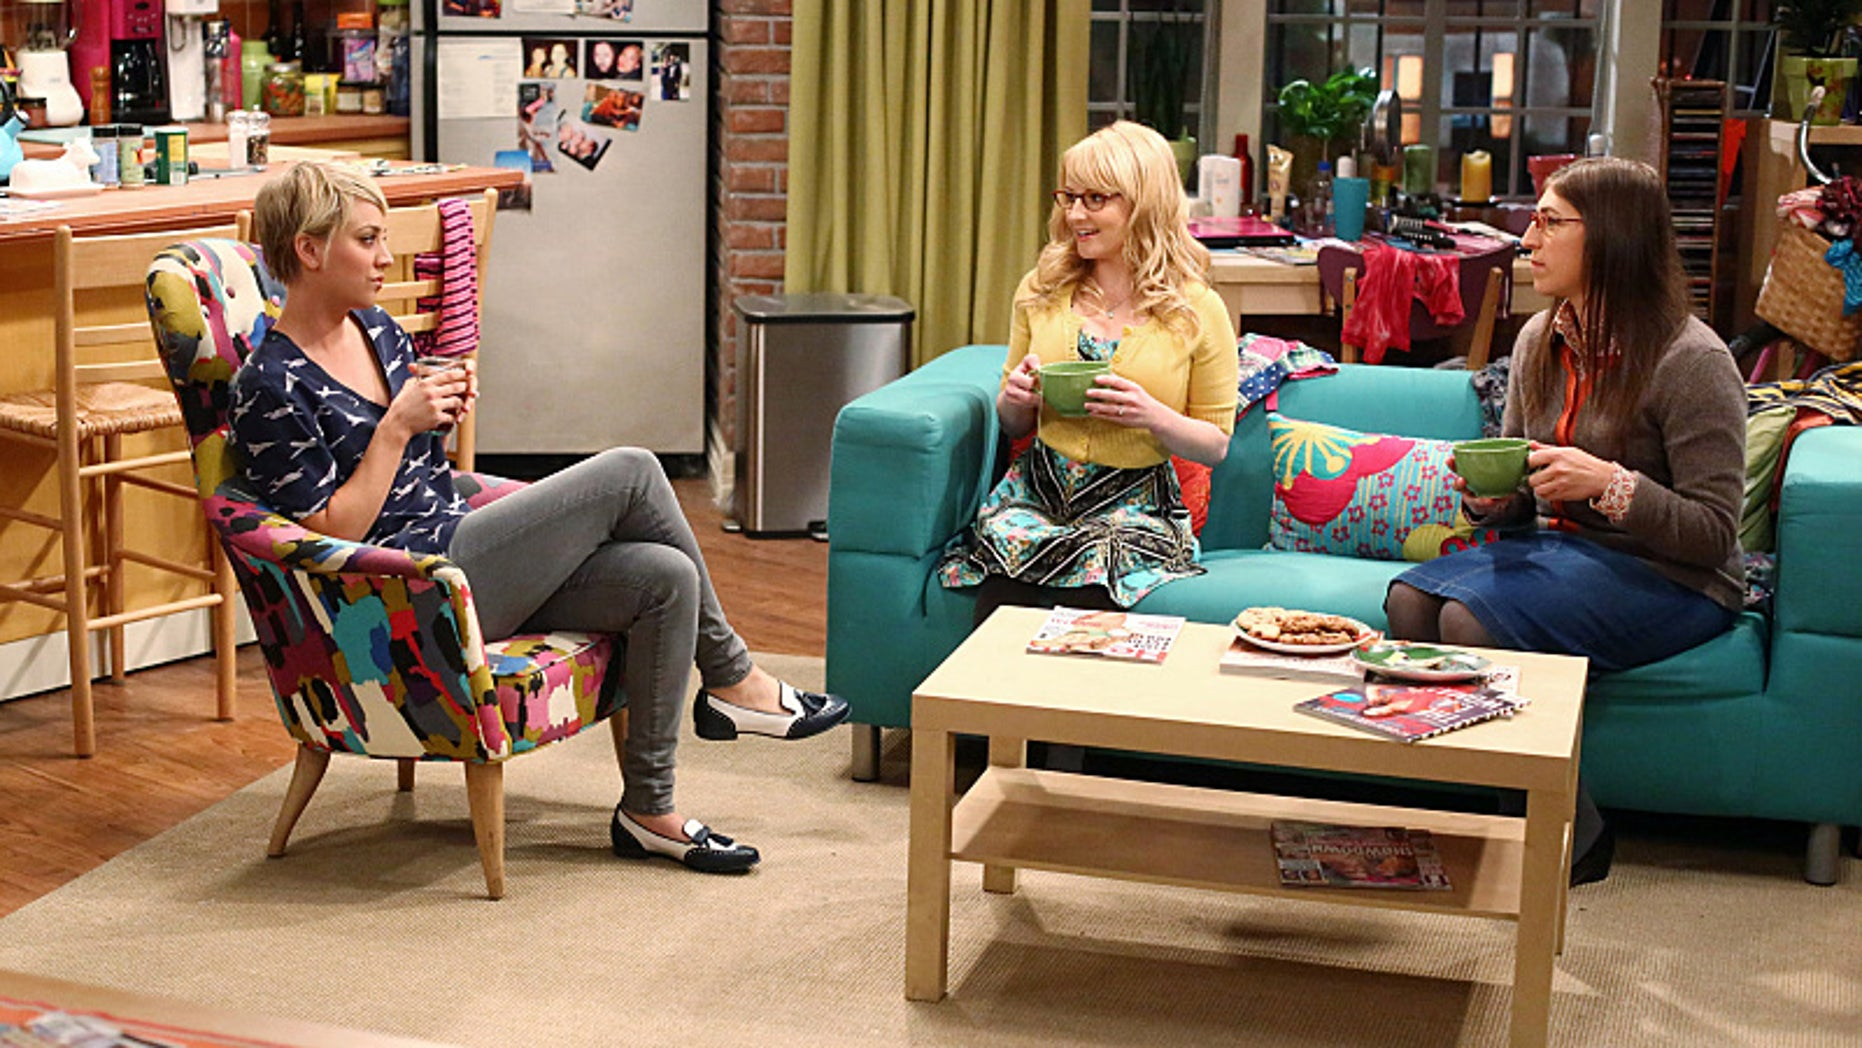 """""""The Misinterpretation Agitation"""" -- The guys try to help Penny out of an awkward work dilemma. Meanwhile, Amy and Bernadette argue over whether or not female scientists should play up their sexuality, on THE BIG BANG THEORY, Thursday, Oct. 30 (8:00-8:31 PM, ET/PT), on the CBS Television Network. Pictured left to right: Kaley Cuoco-Sweeting, Melissa Rauch and Mayim Bialik Photo: Michael Ansell/WBEI ©2014 WBEI. All rights reserved."""